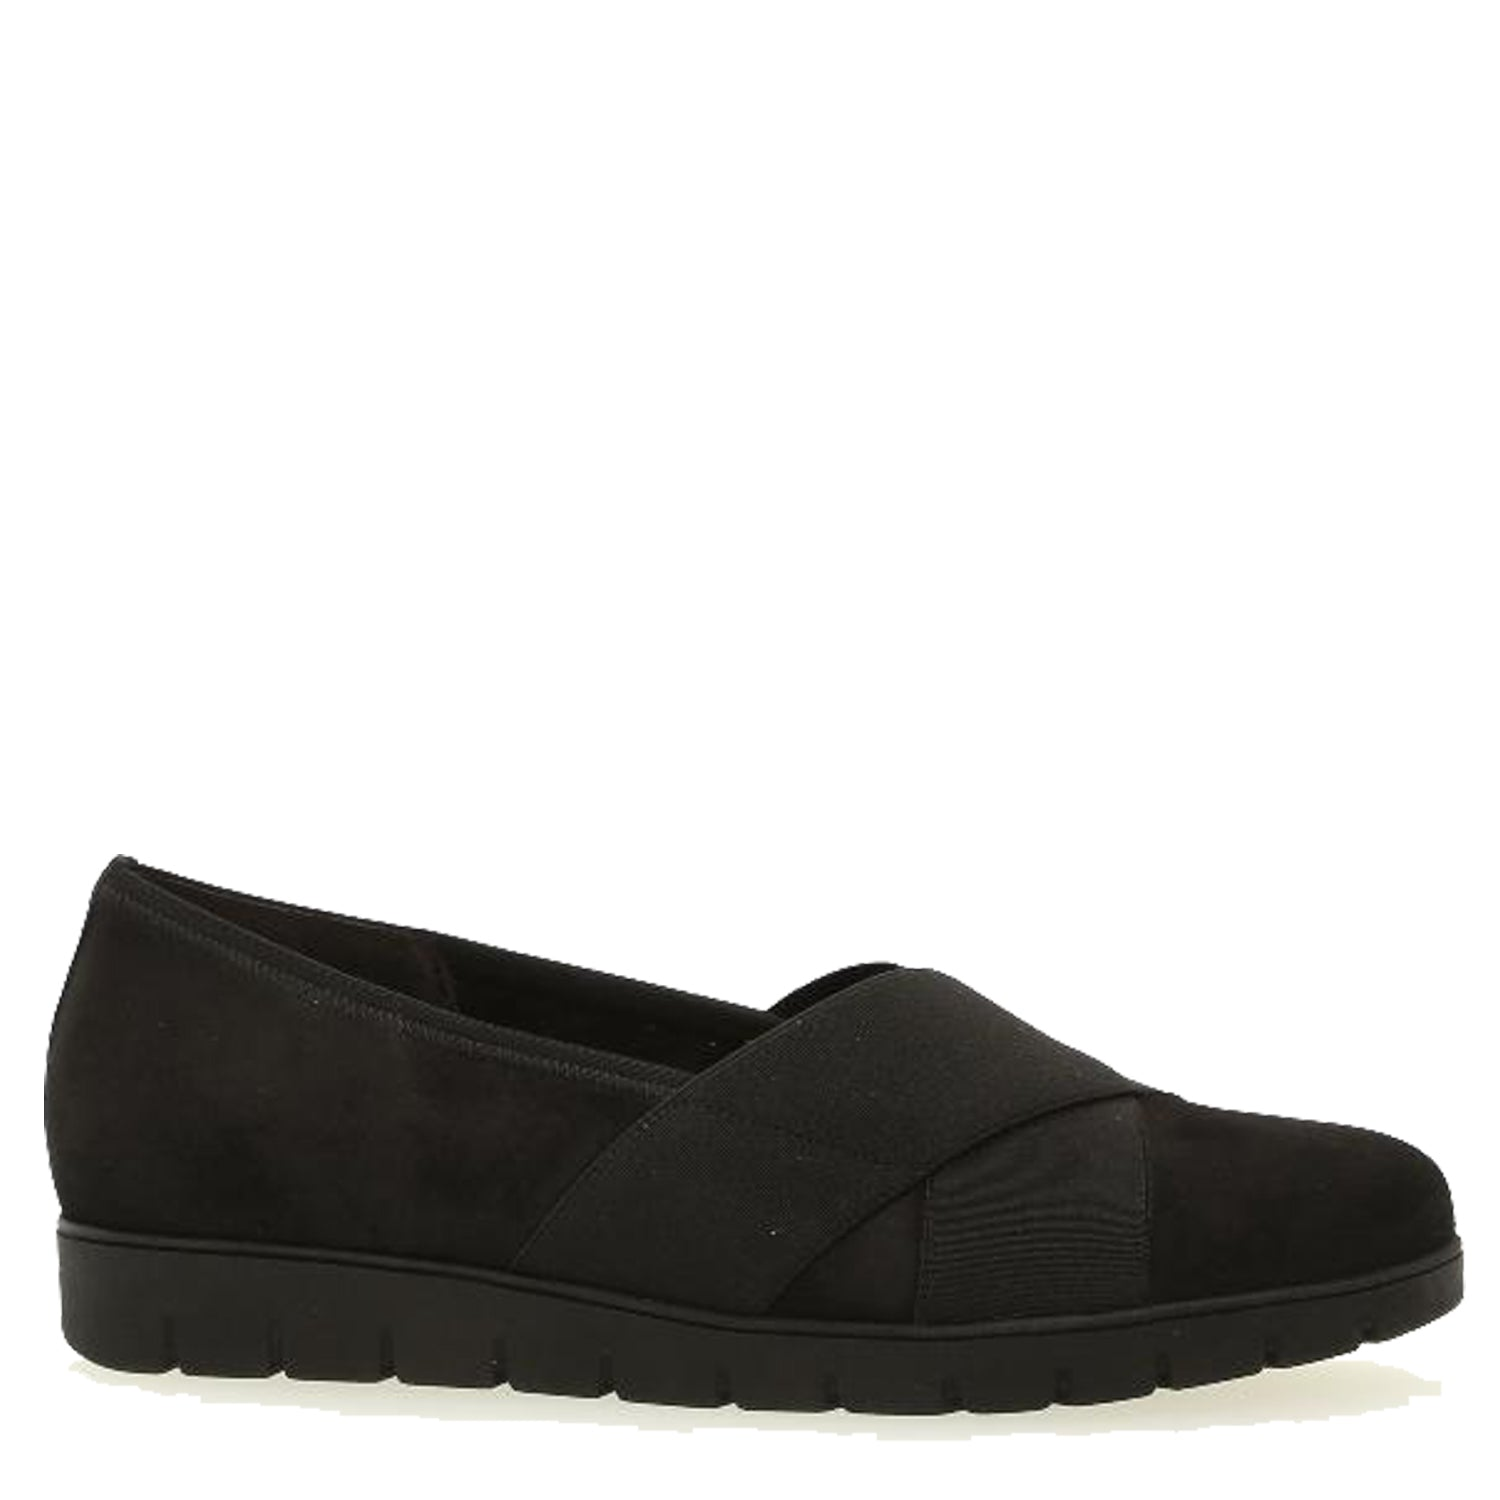 G92.622 - BLACK NUBUCK